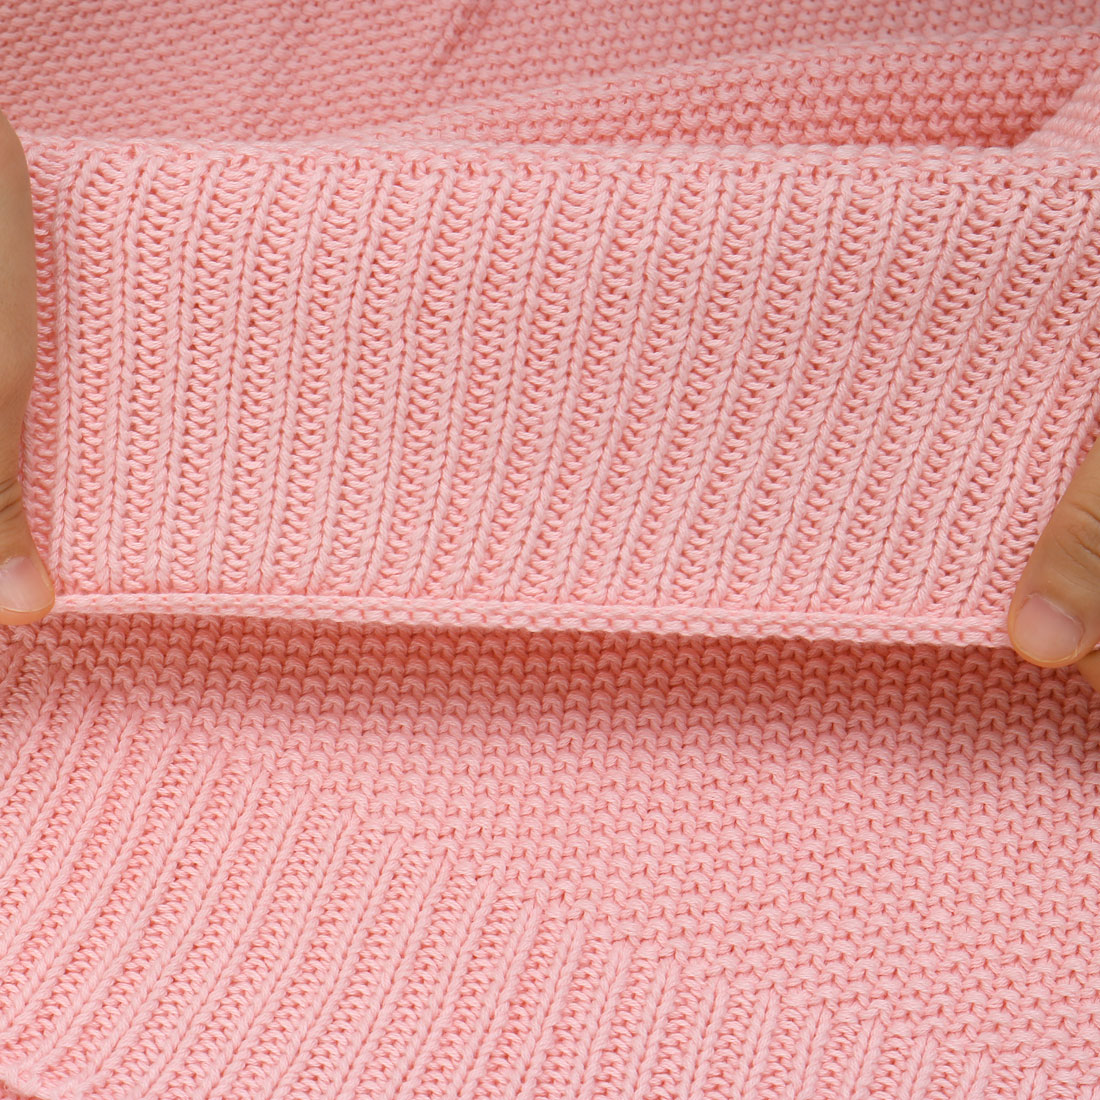 "100% Cotton Soft Warm Knit Throw Blanket Bed Sofa Home Decor 71"" x 79"" Pink - image 1 de 8"